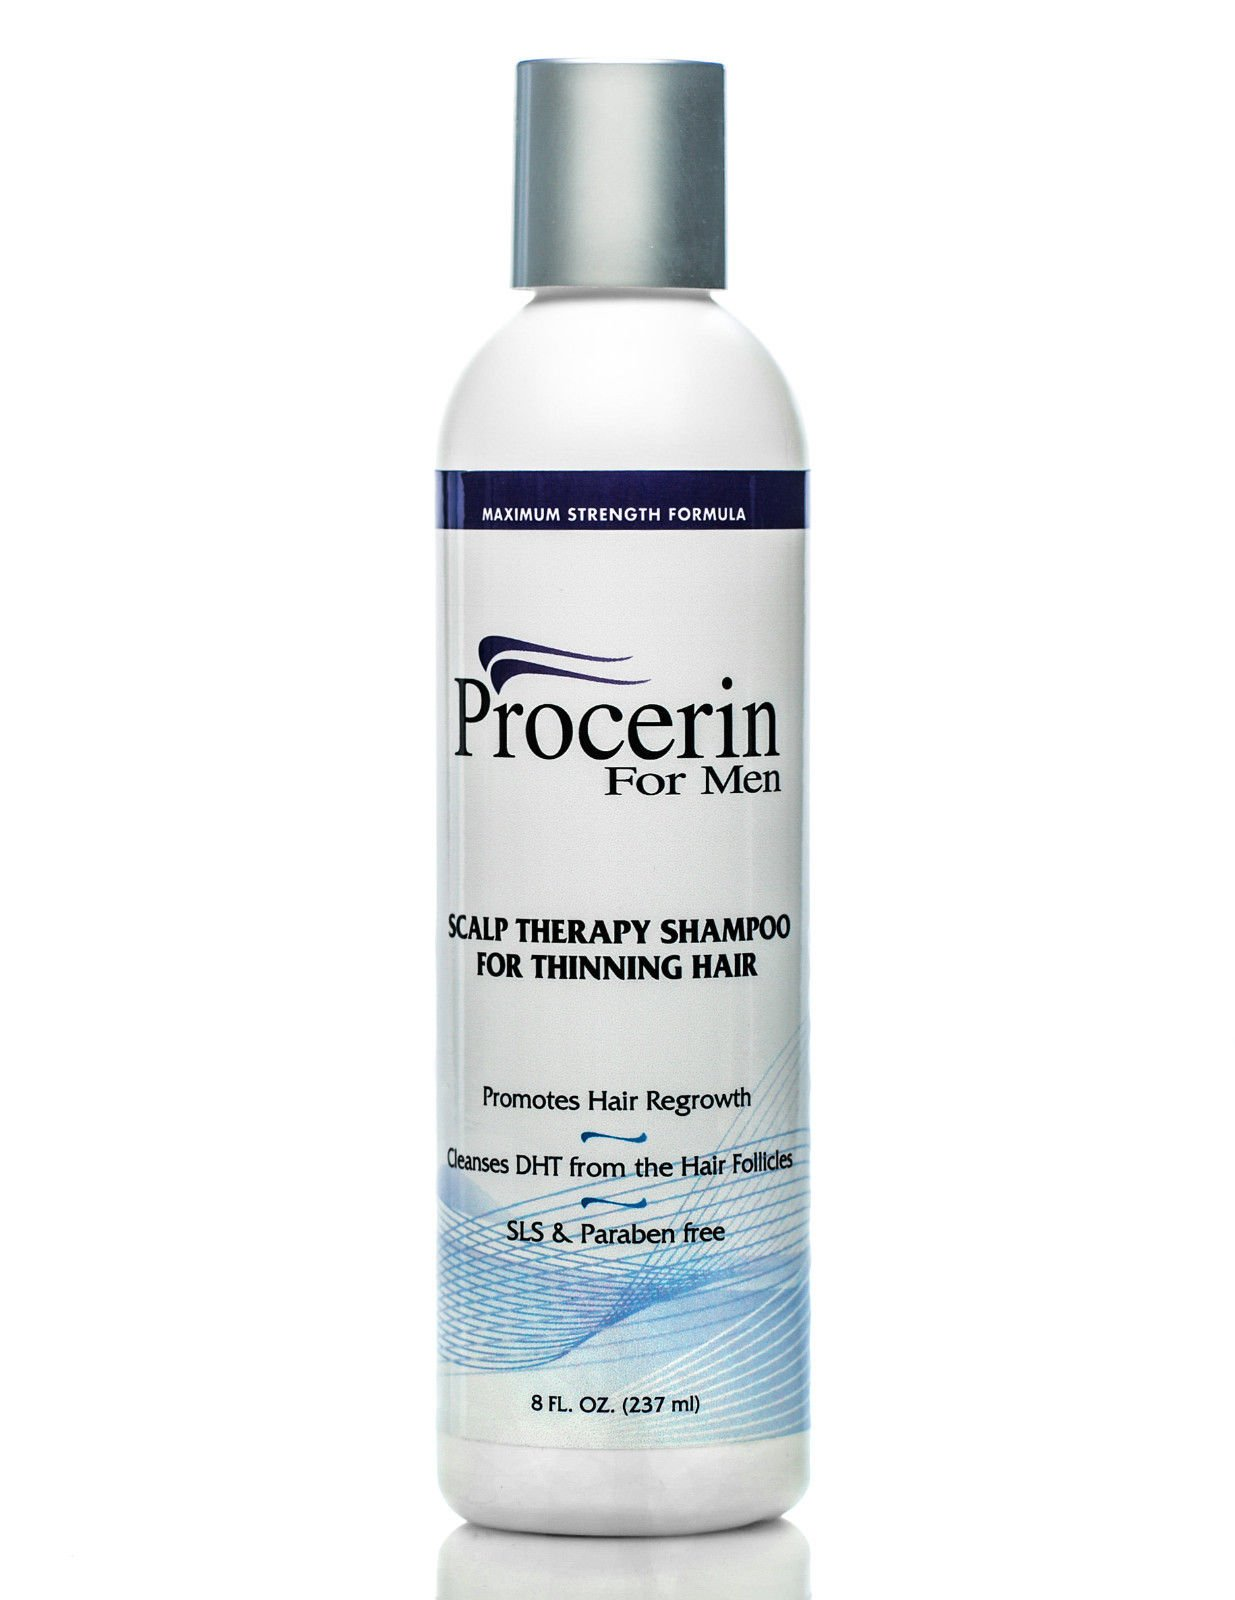 Procerin Men Hair Loss Shampoo for Hair Thinning Removes DHT Cleanse Scalp About Hair